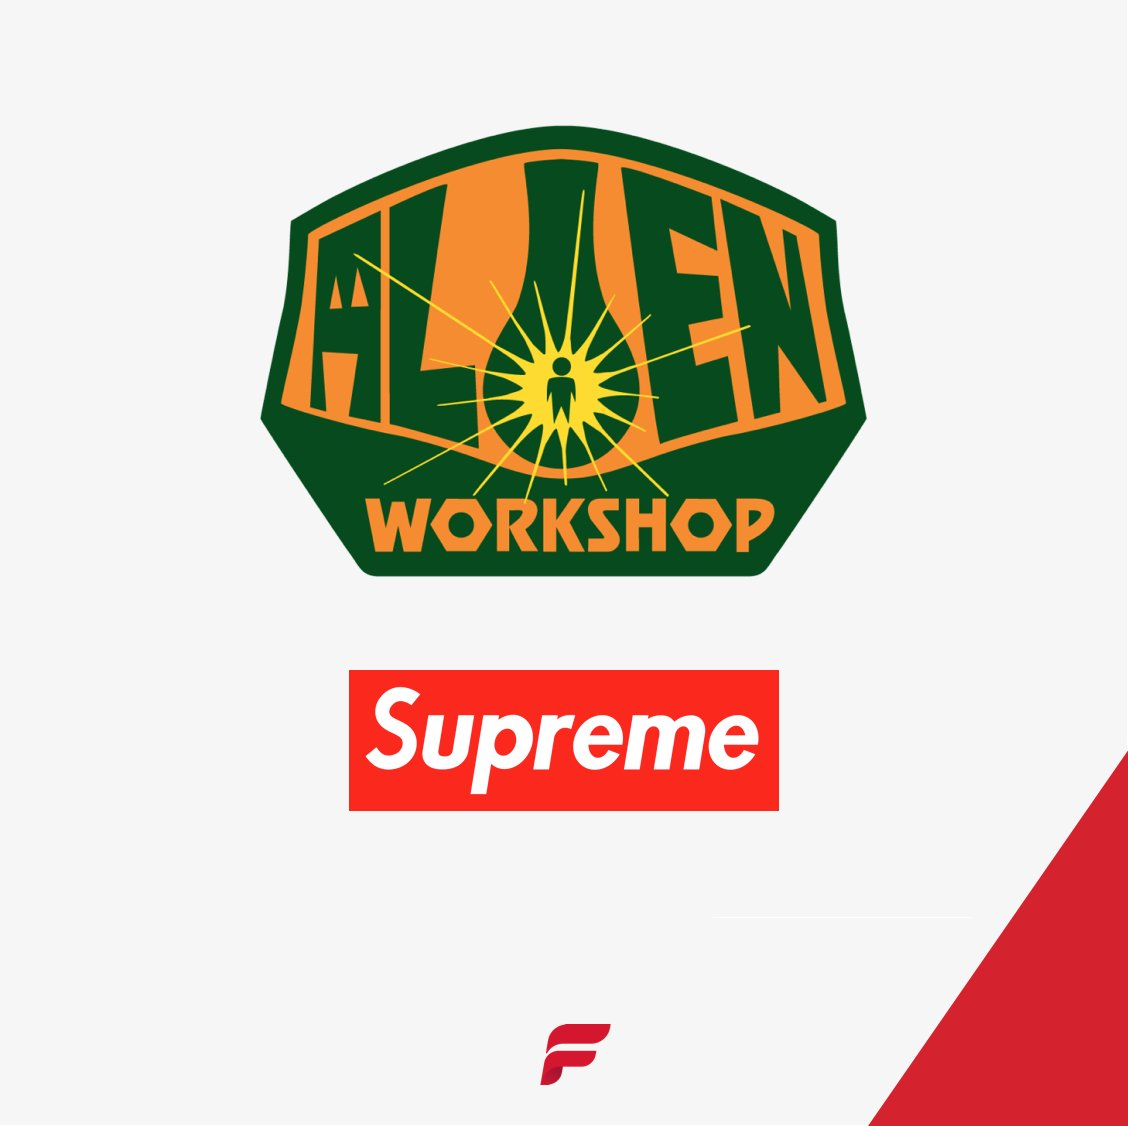 Supreme x Alien Workshop FW17 (Fall/Winter 2017) Collaboration